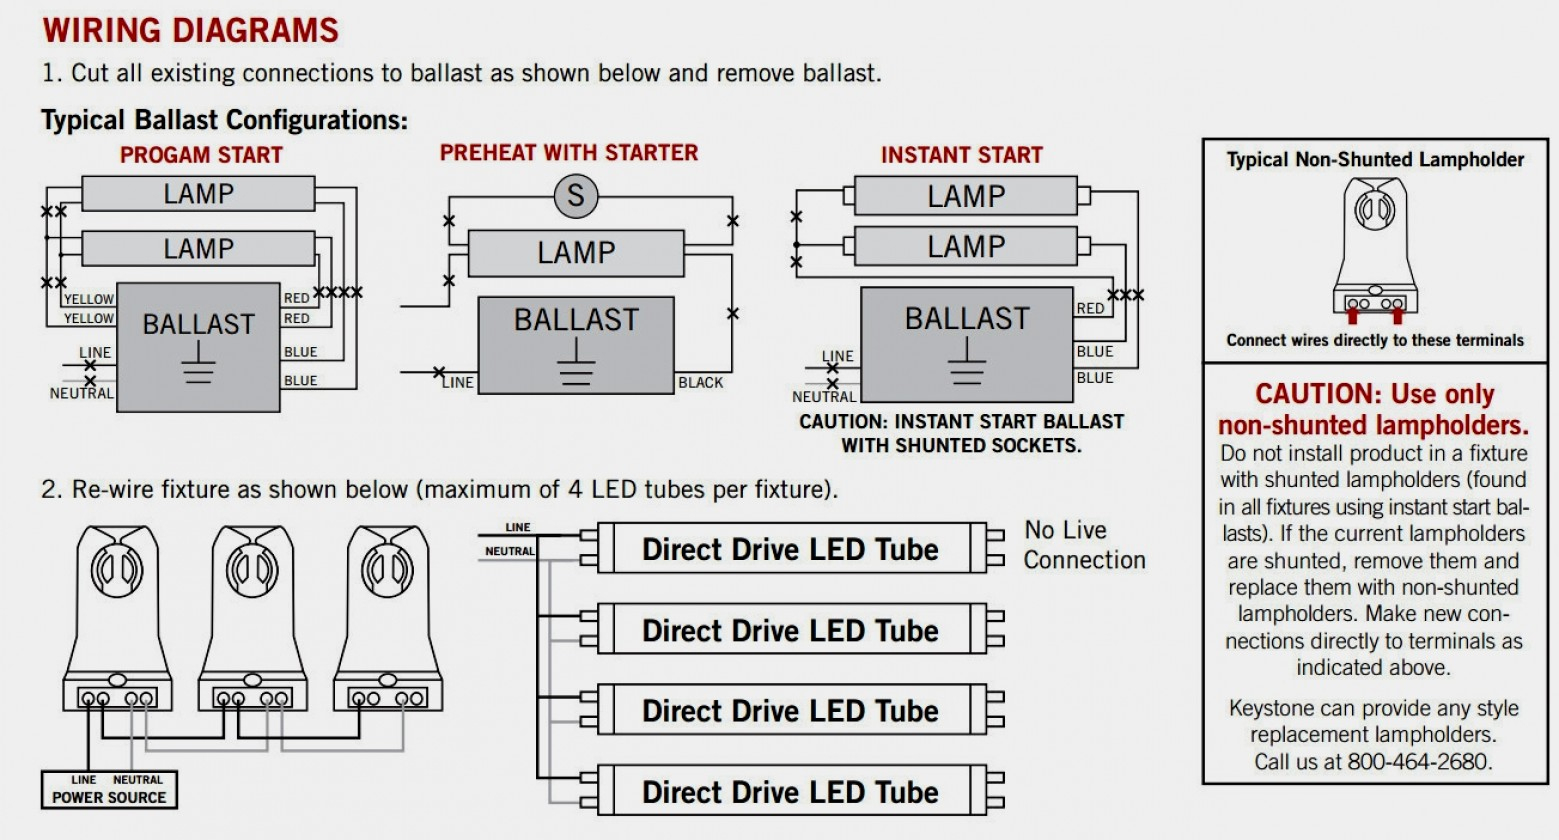 Led Fluorescent Replacement Wiring Diagram | Wiring Diagram - Led Fluorescent Tube Replacement Wiring Diagram